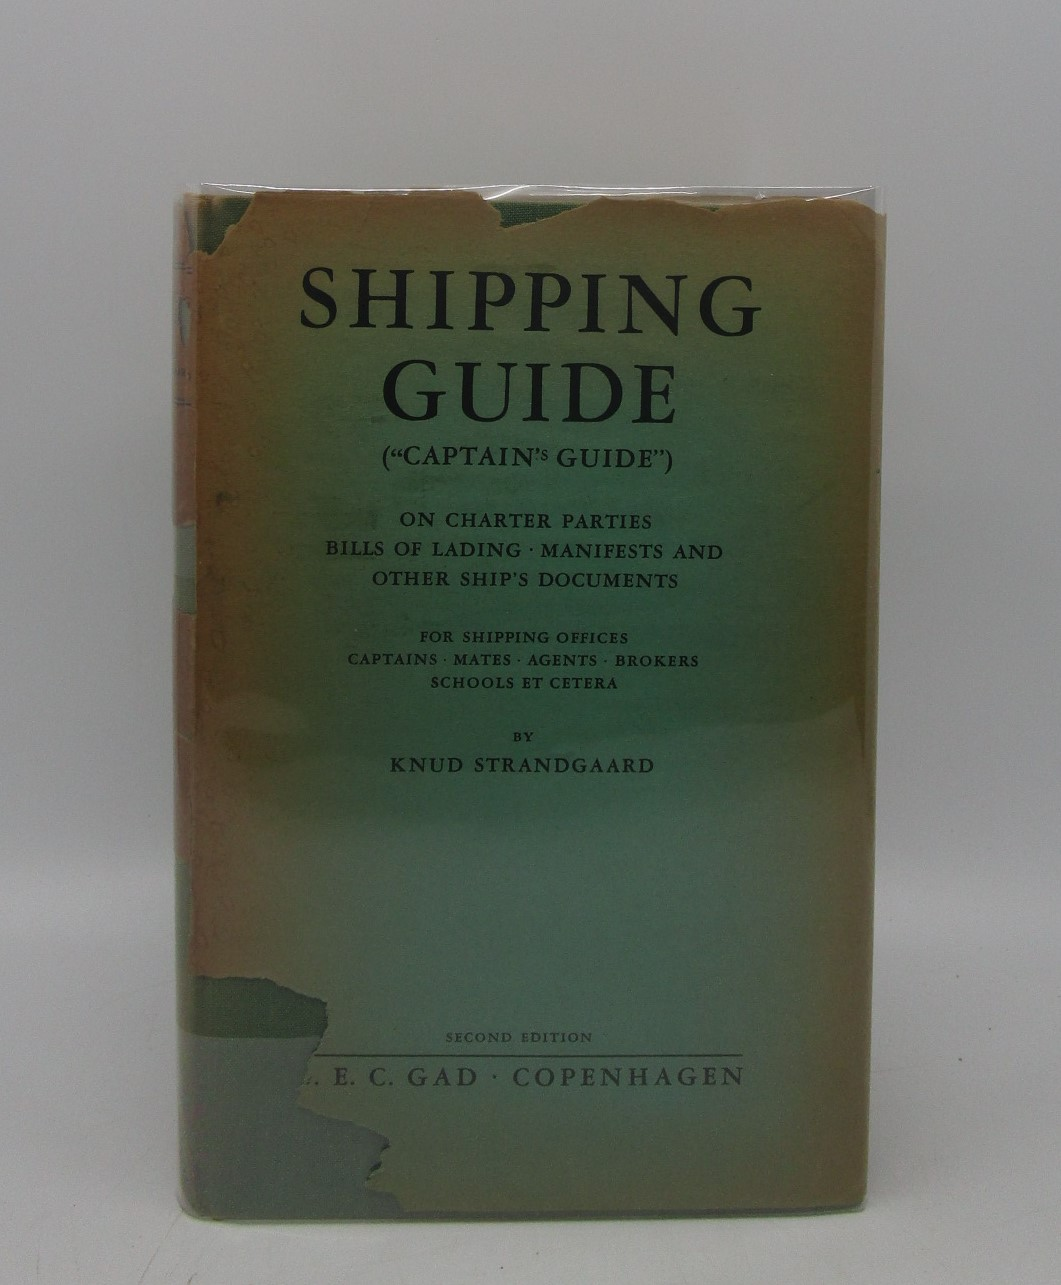 Image for Shipping Guide (Captain's Guide) On Charter Parties, Bills of Lading, Manifests and Other Ships Documents for Shipping Offices, Captains, Mates, Agetns, Brokers, Schools, et cetera